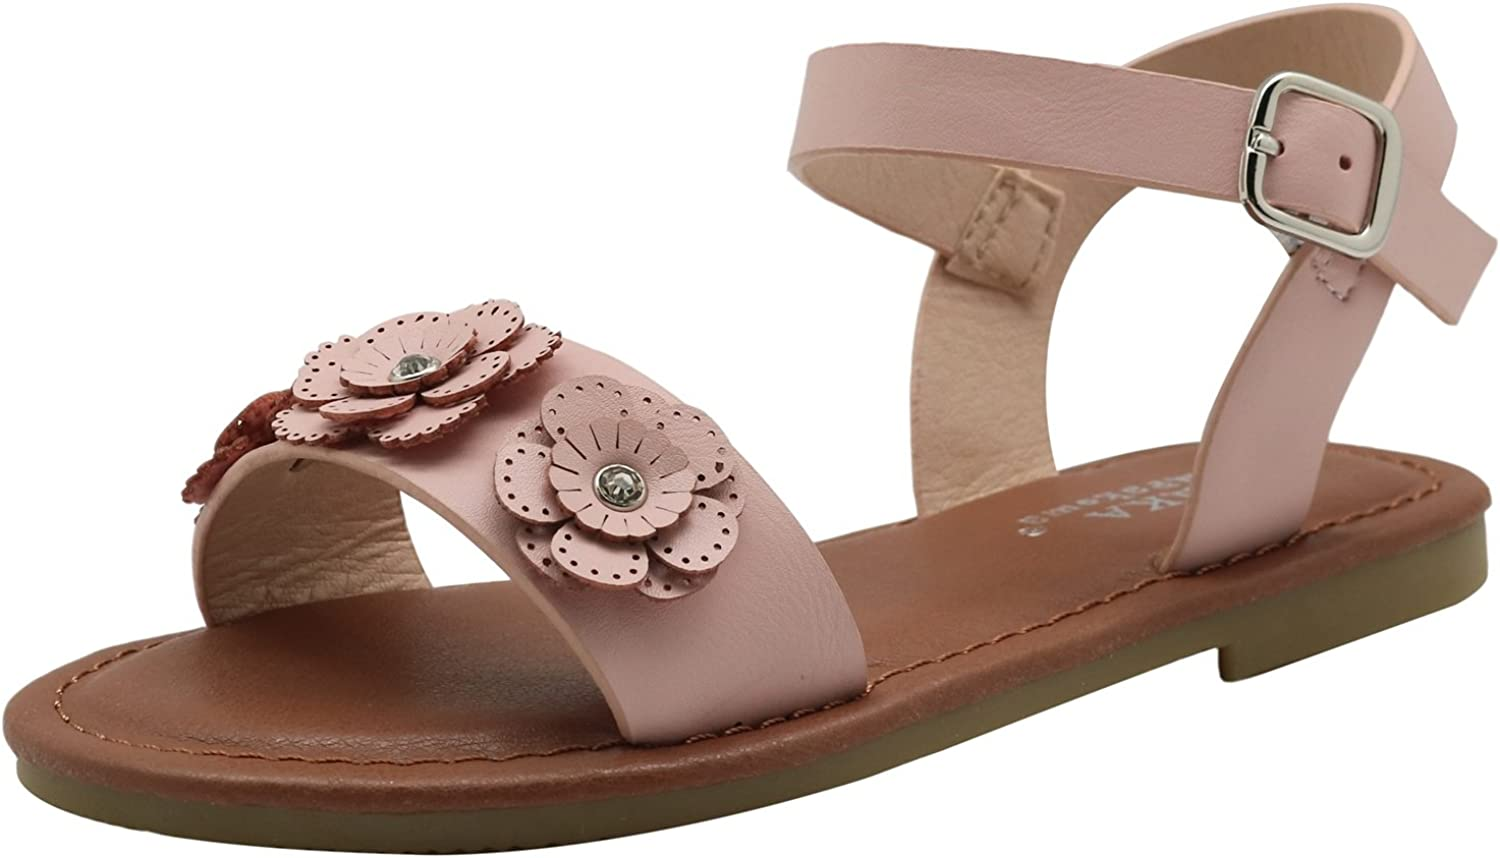 Little Kid//Big Kid Apakowa Kids Girls Fashion Flower Sandal